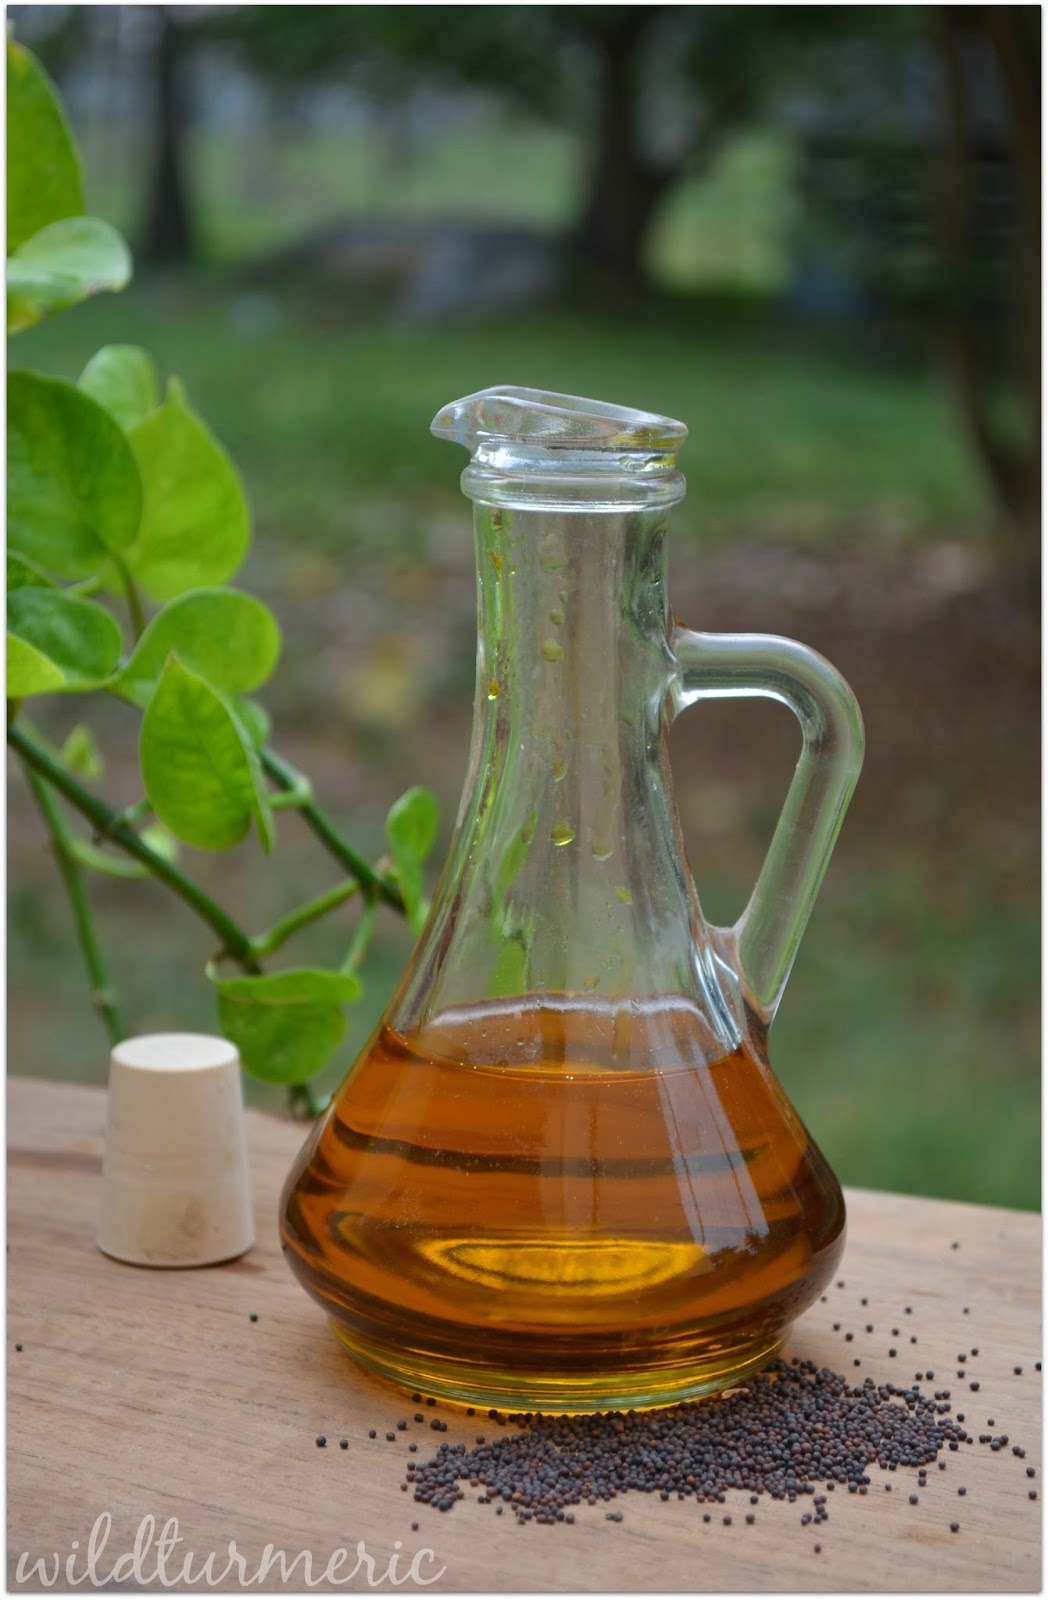 5 top hair skin health benefits uses of mustard oil - What to do with mustard five unknown uses ...